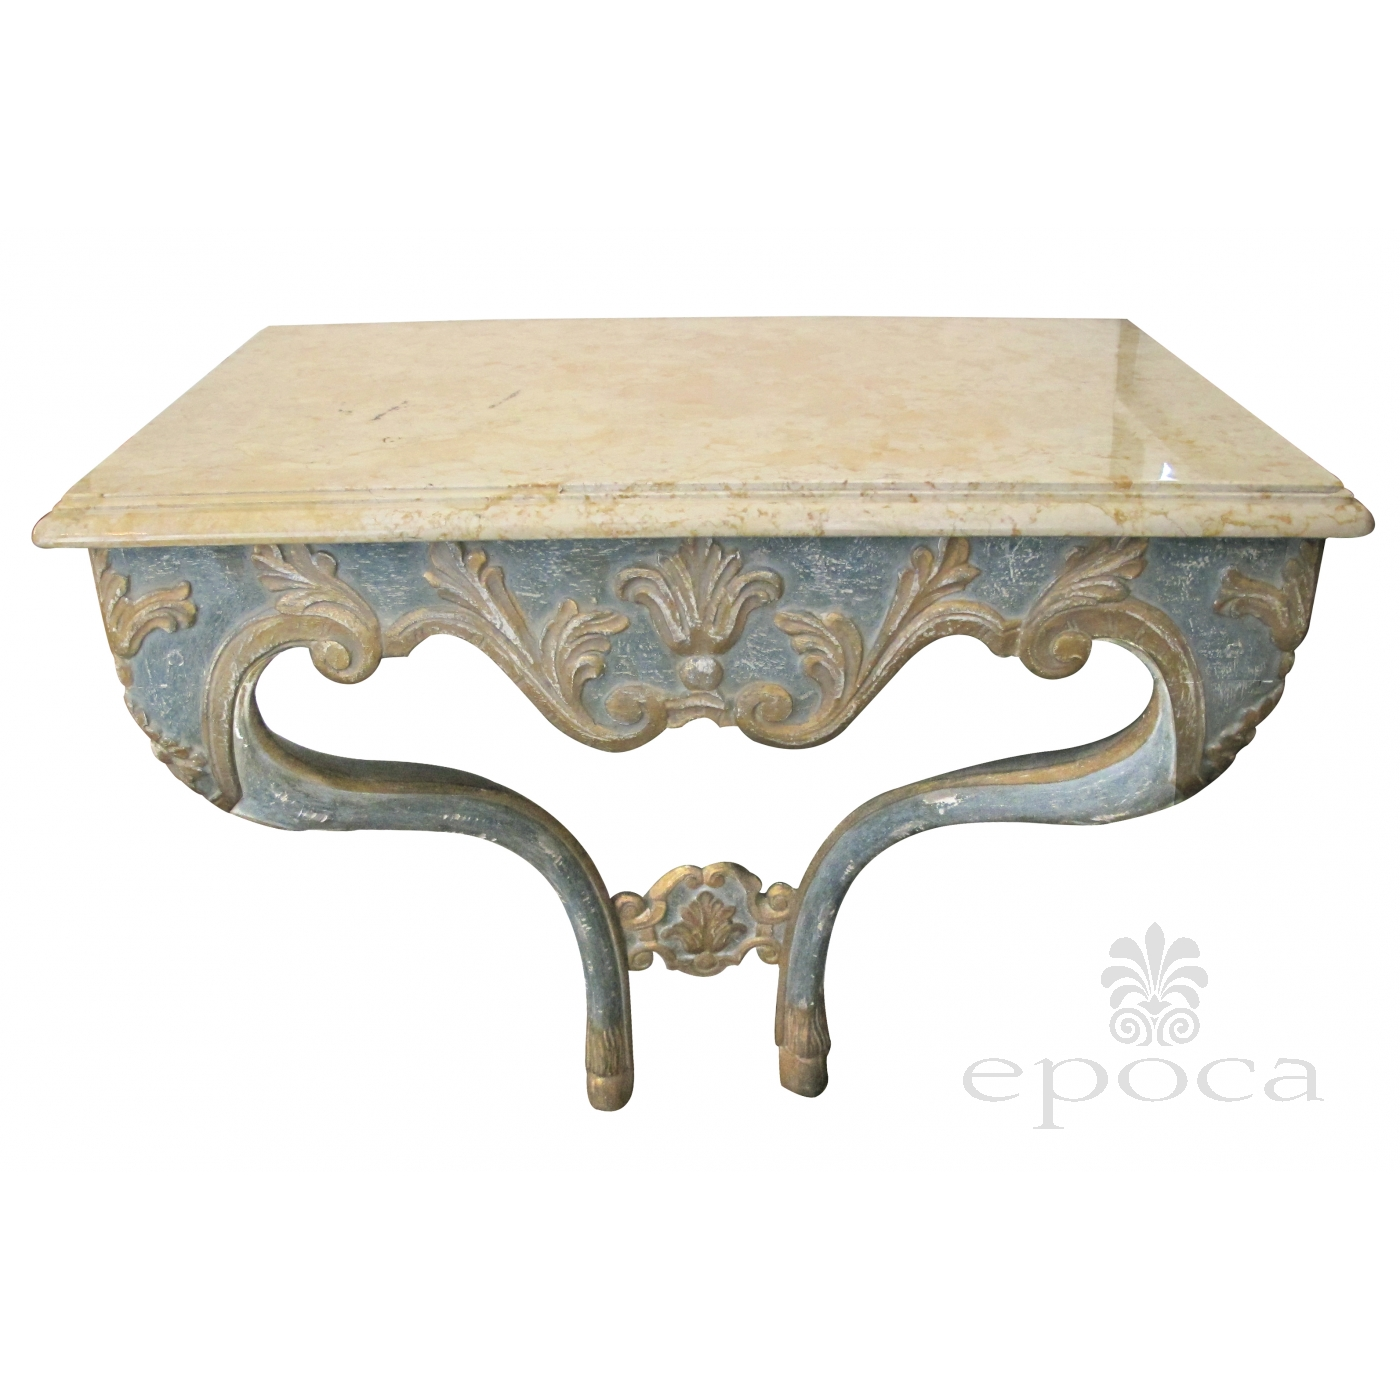 An elegant american baroque style green painted console table with elegant custom made italian baroque style aqua and ochre painted console table with marble top geotapseo Choice Image